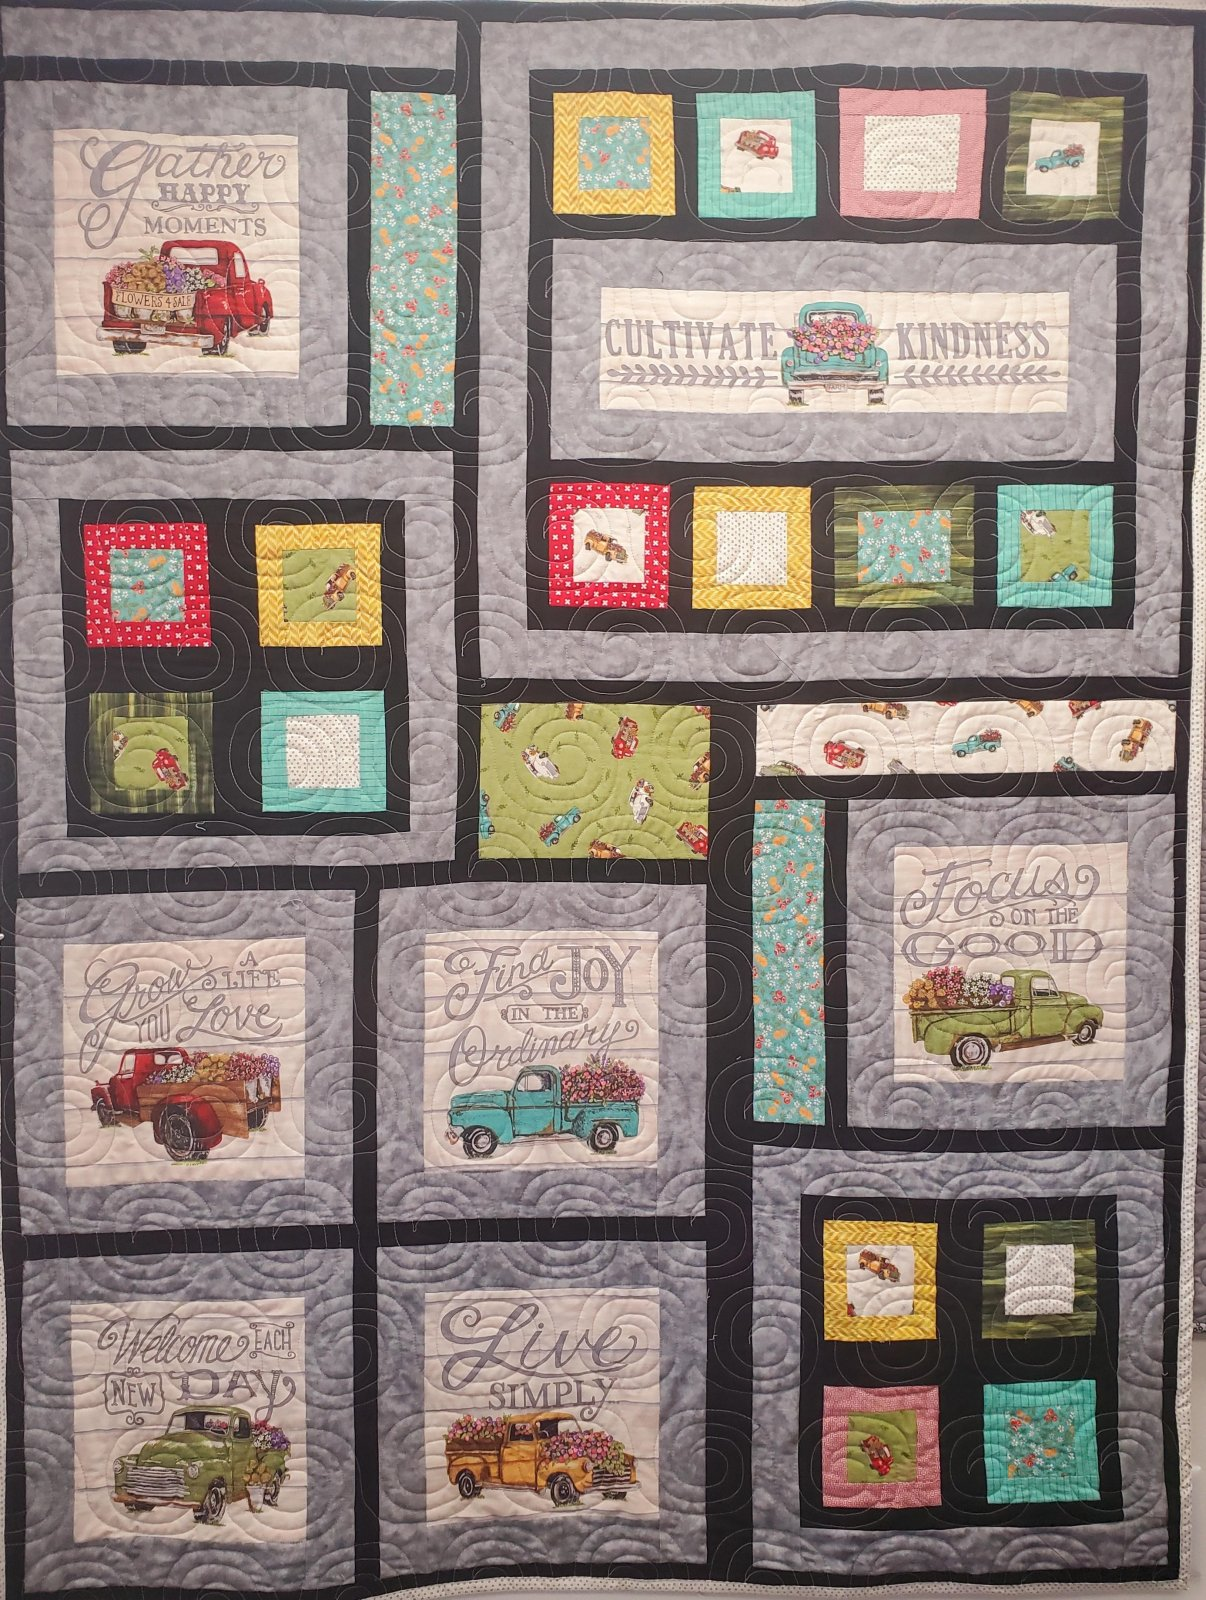 Cultivate Kindness Quilt Kit